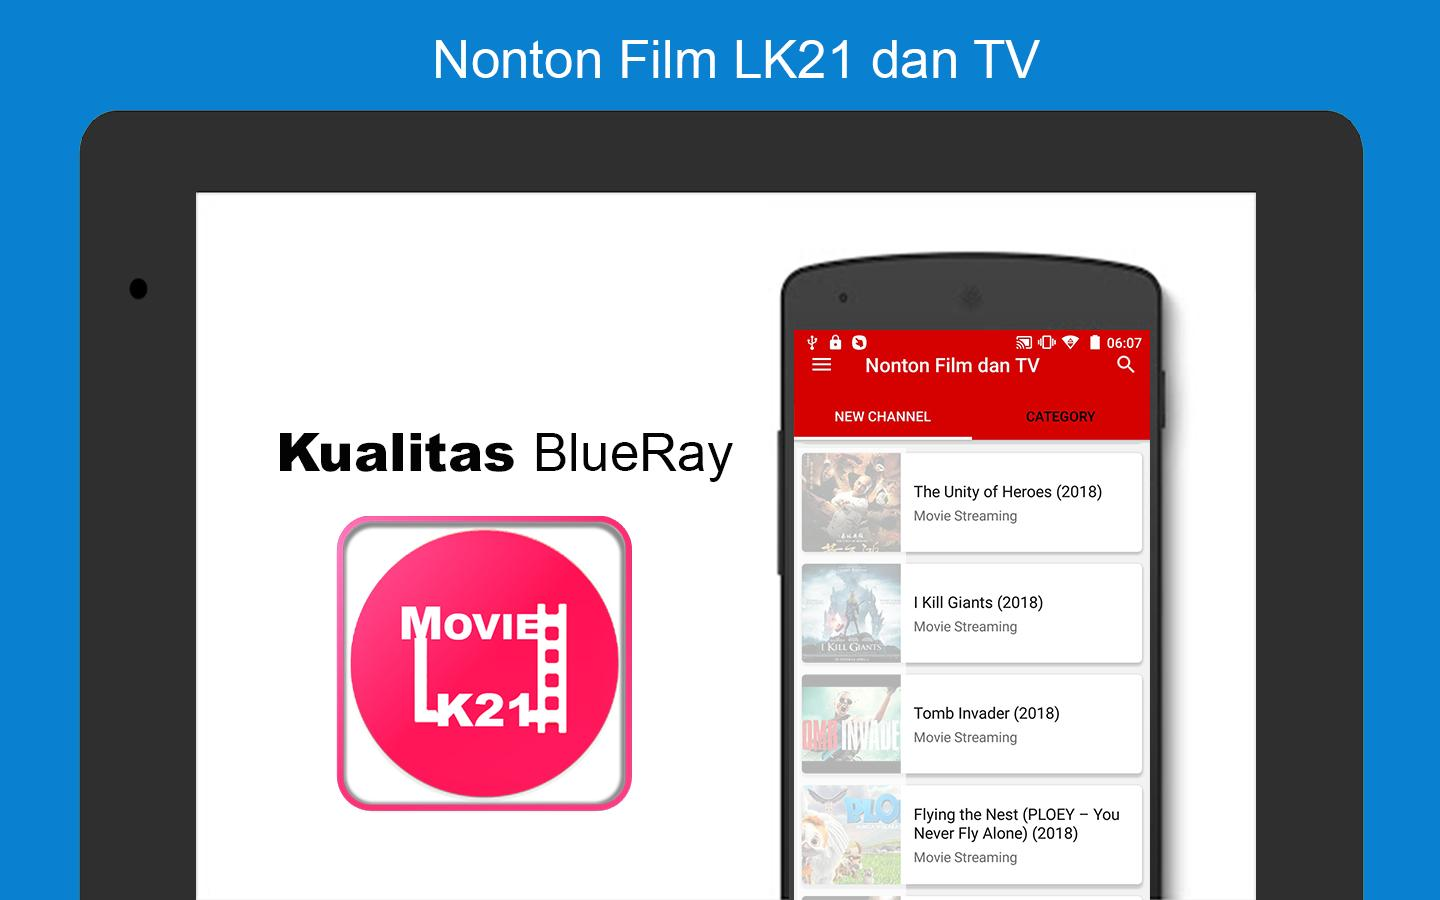 Nonton LK21 PRO NF21 HD - Nonton Film Gratis for Android - APK Download